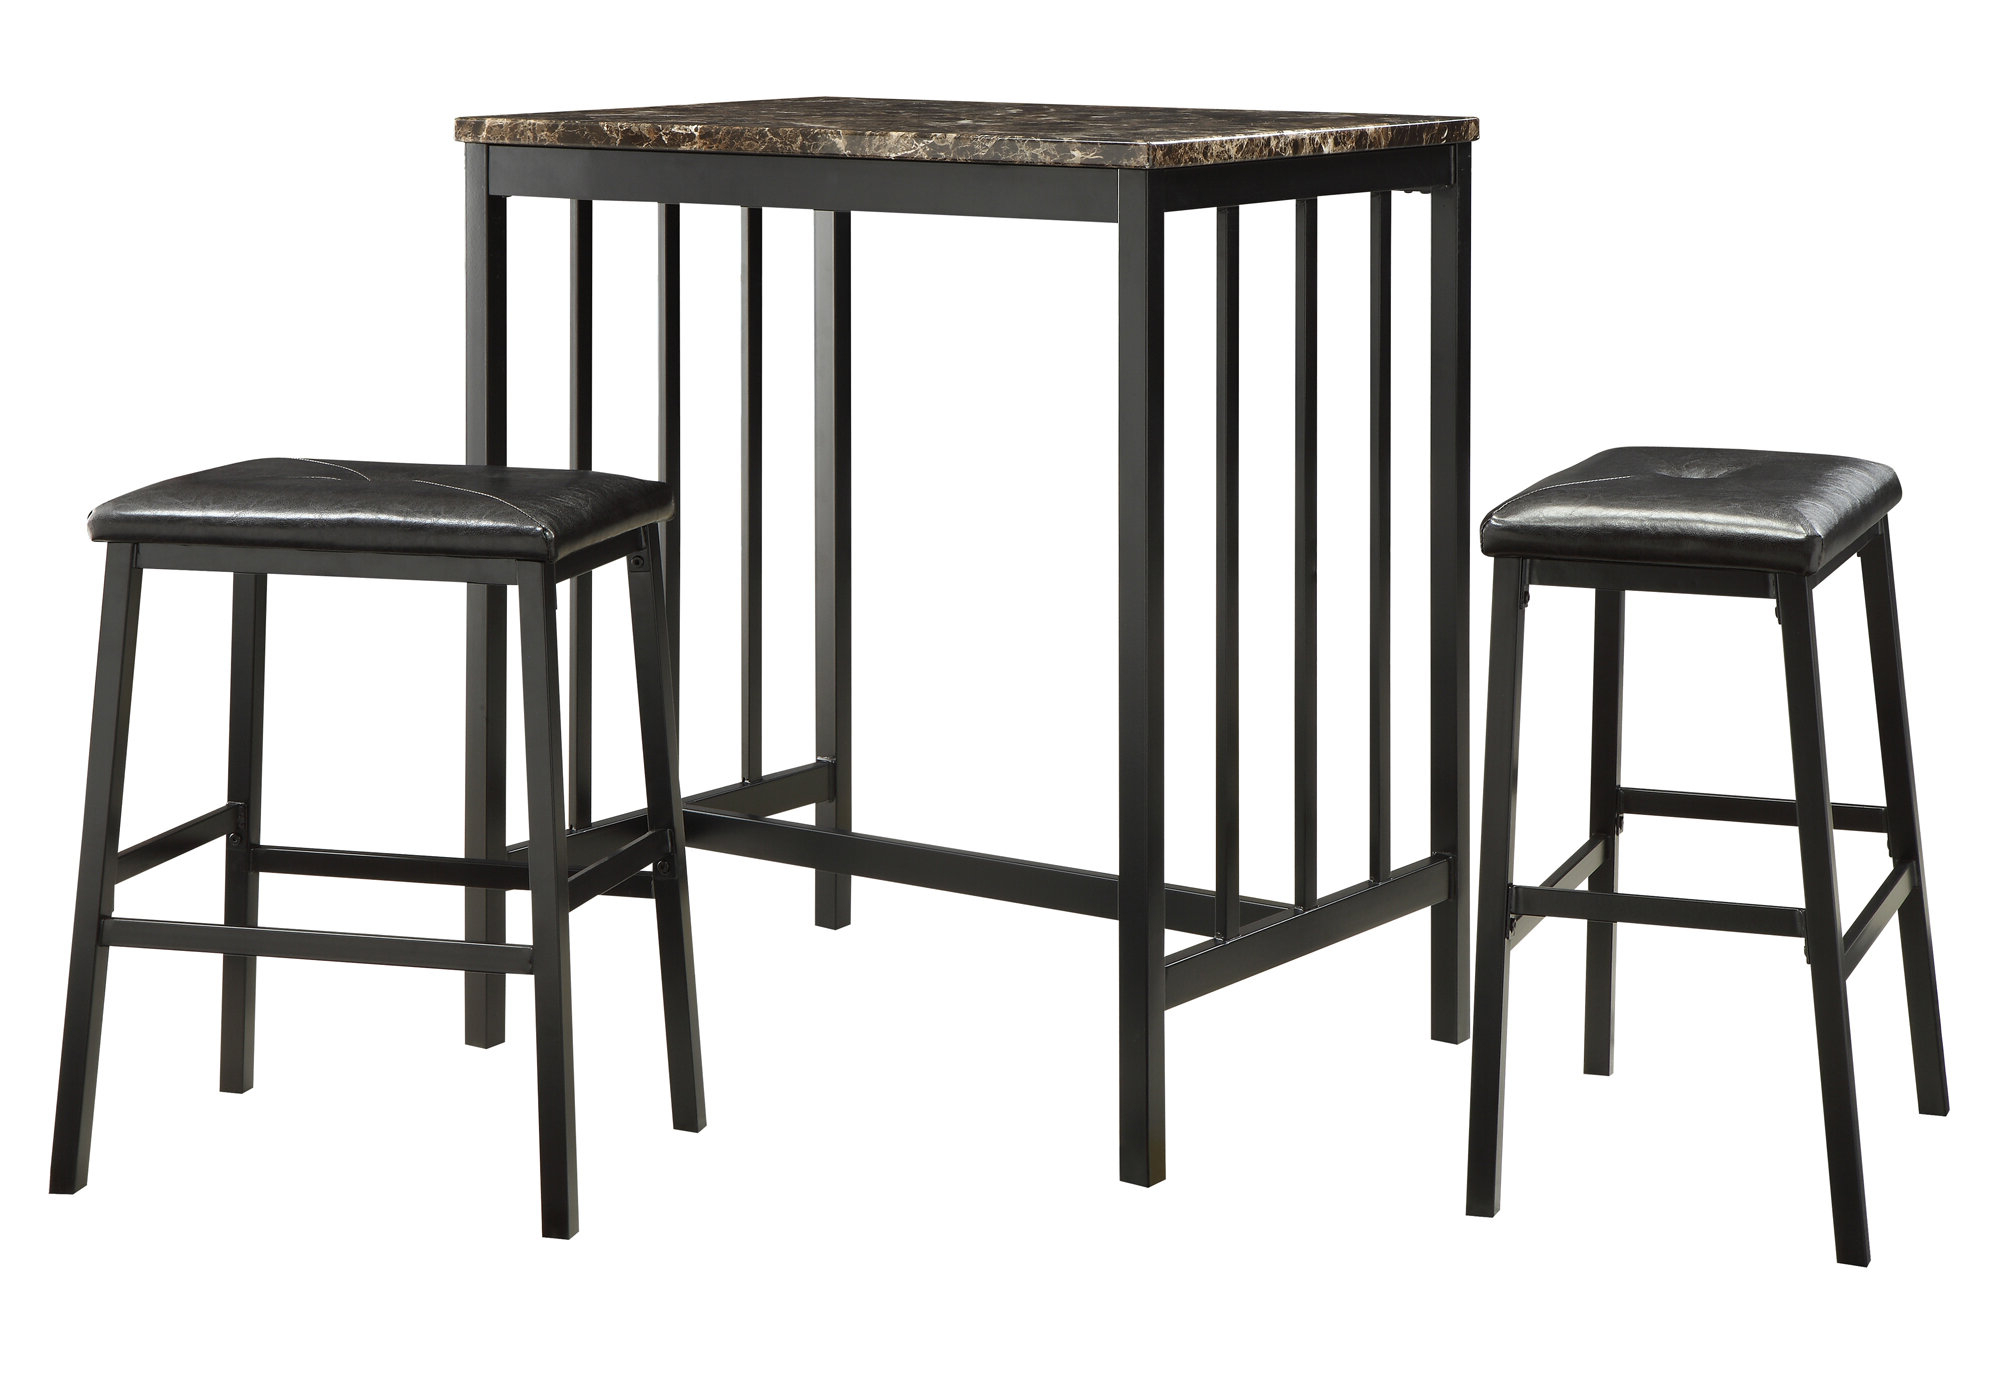 Trendy Anette 3 Piece Counter Height Dining Set Pertaining To Anette 3 Piece Counter Height Dining Sets (View 1 of 20)